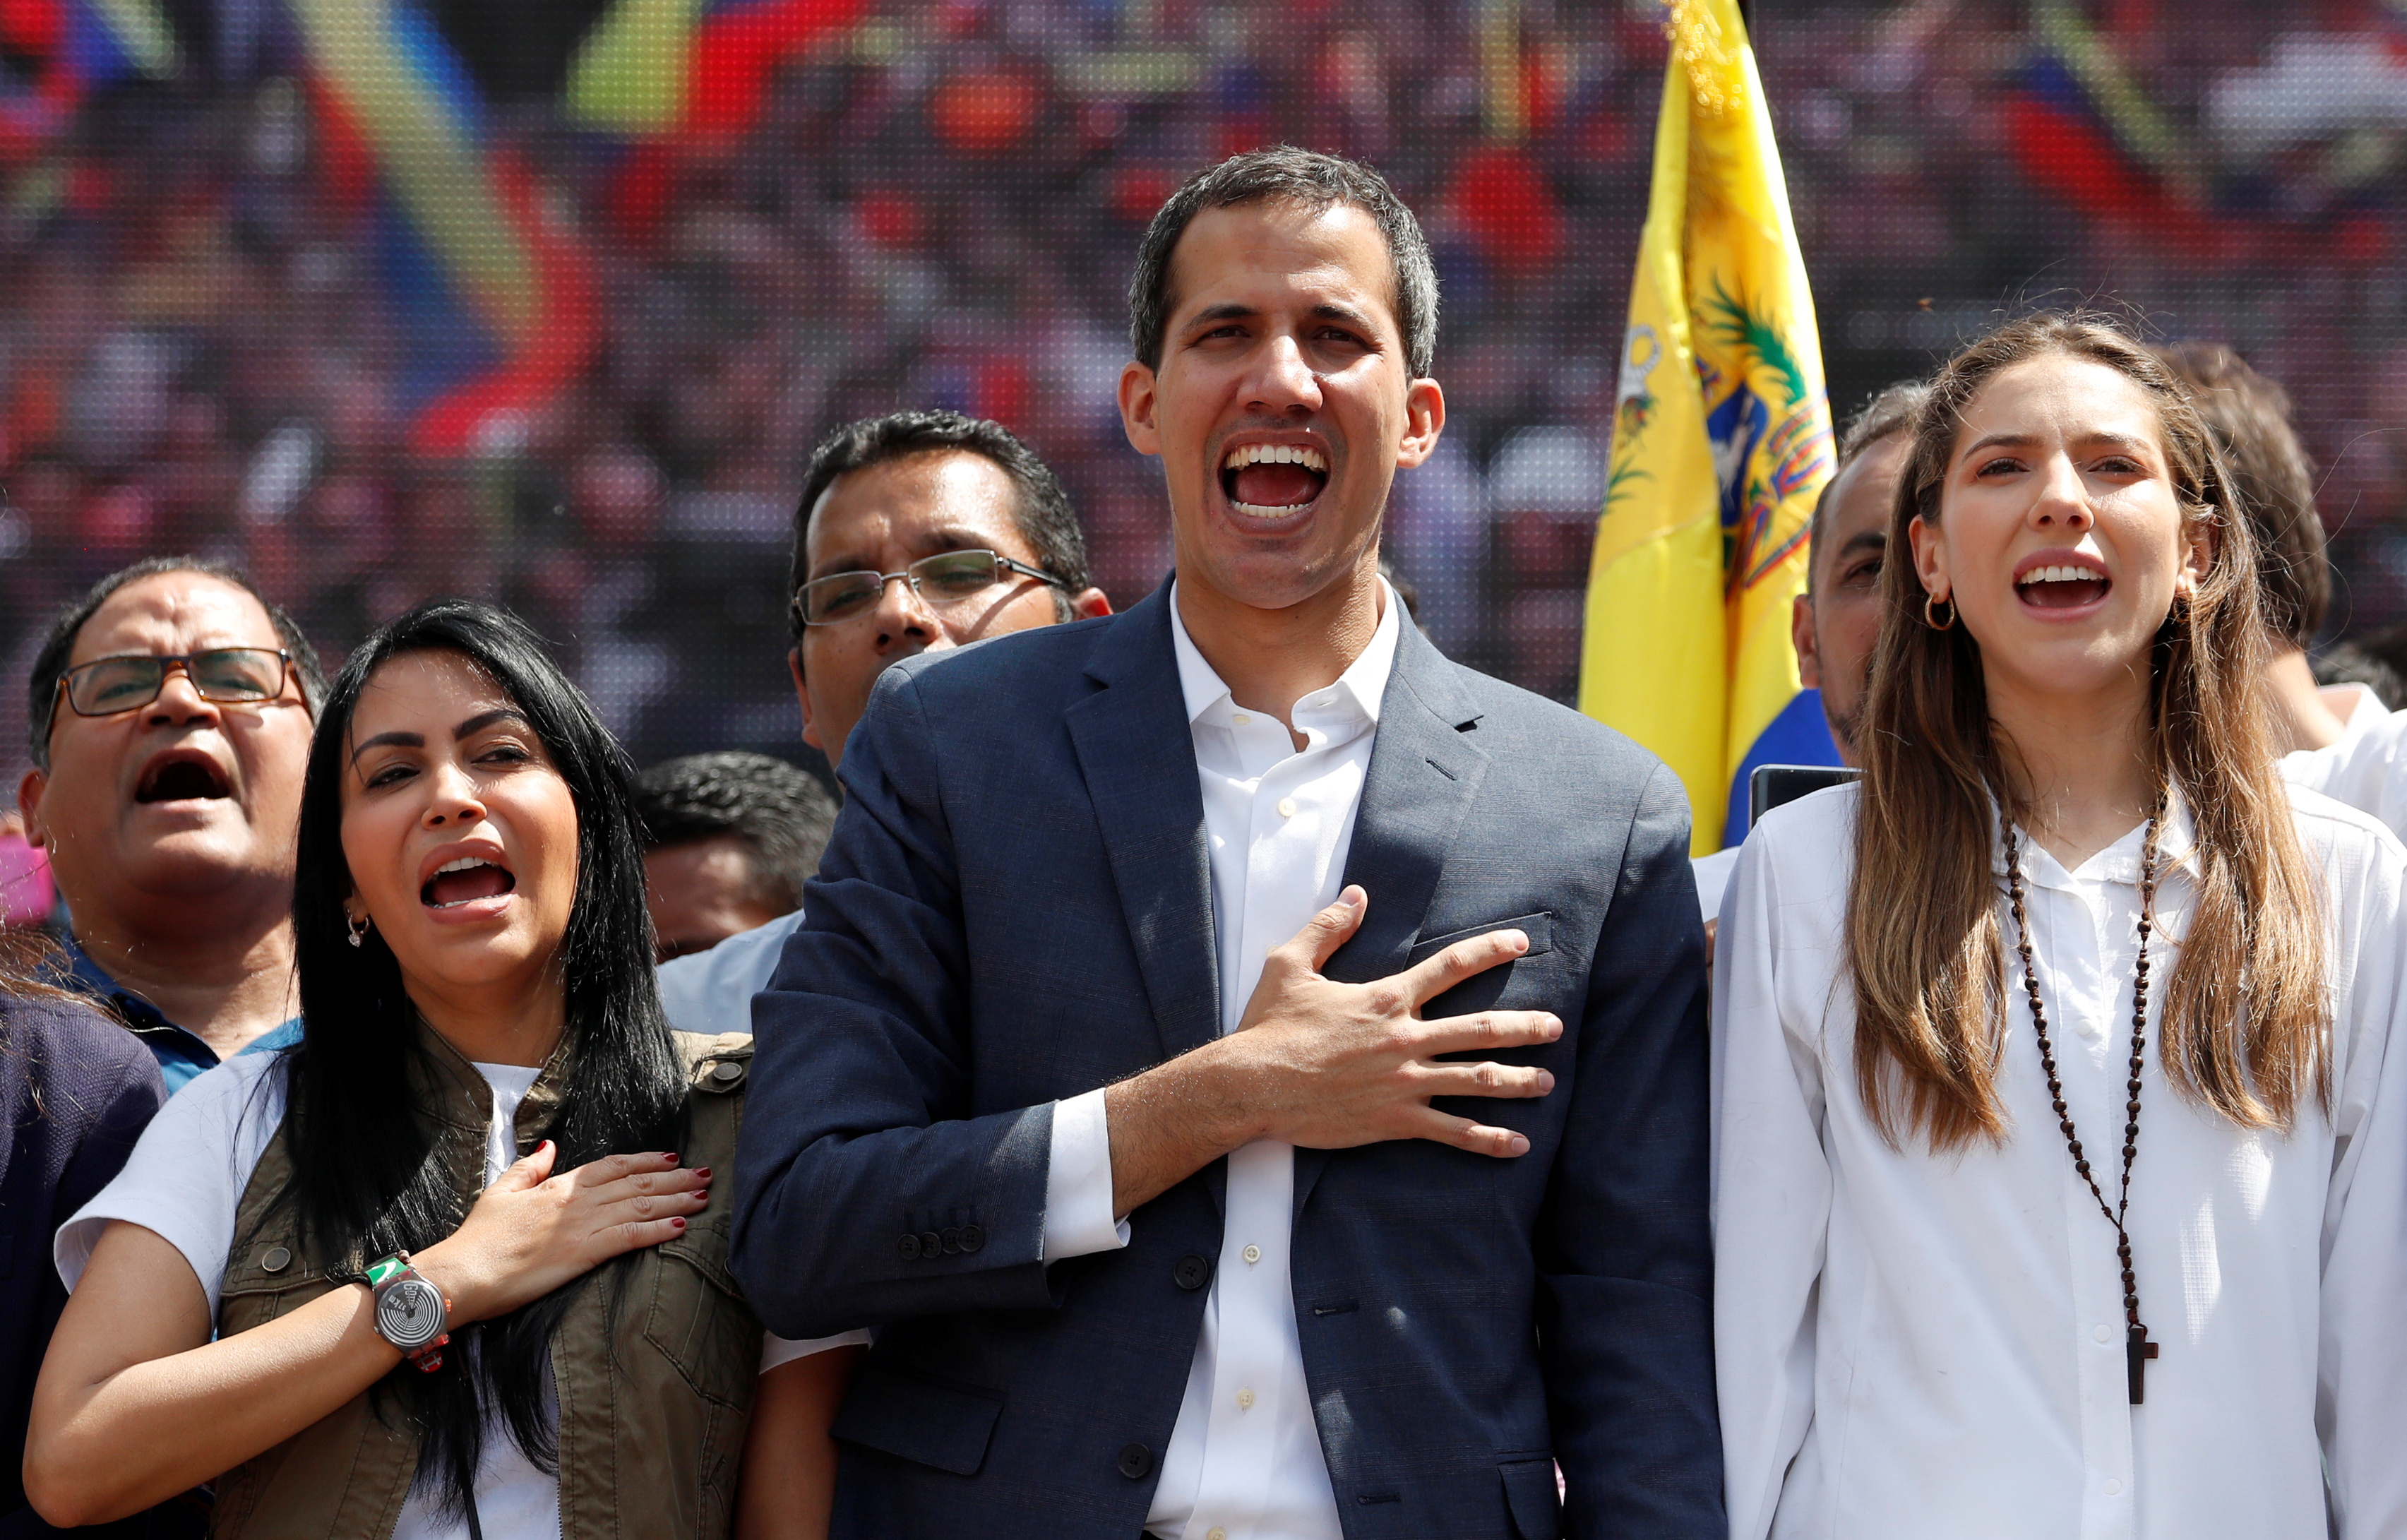 Venezuelan opposition leader and self-proclaimed interim president Juan Guaido and his wife Fabiana Rosales gesture during a rally against Venezuelan President Nicolas Maduro's government in Caracas, Venezuela February 2, 2019. REUTERS/Carlos Garcia Rawlins